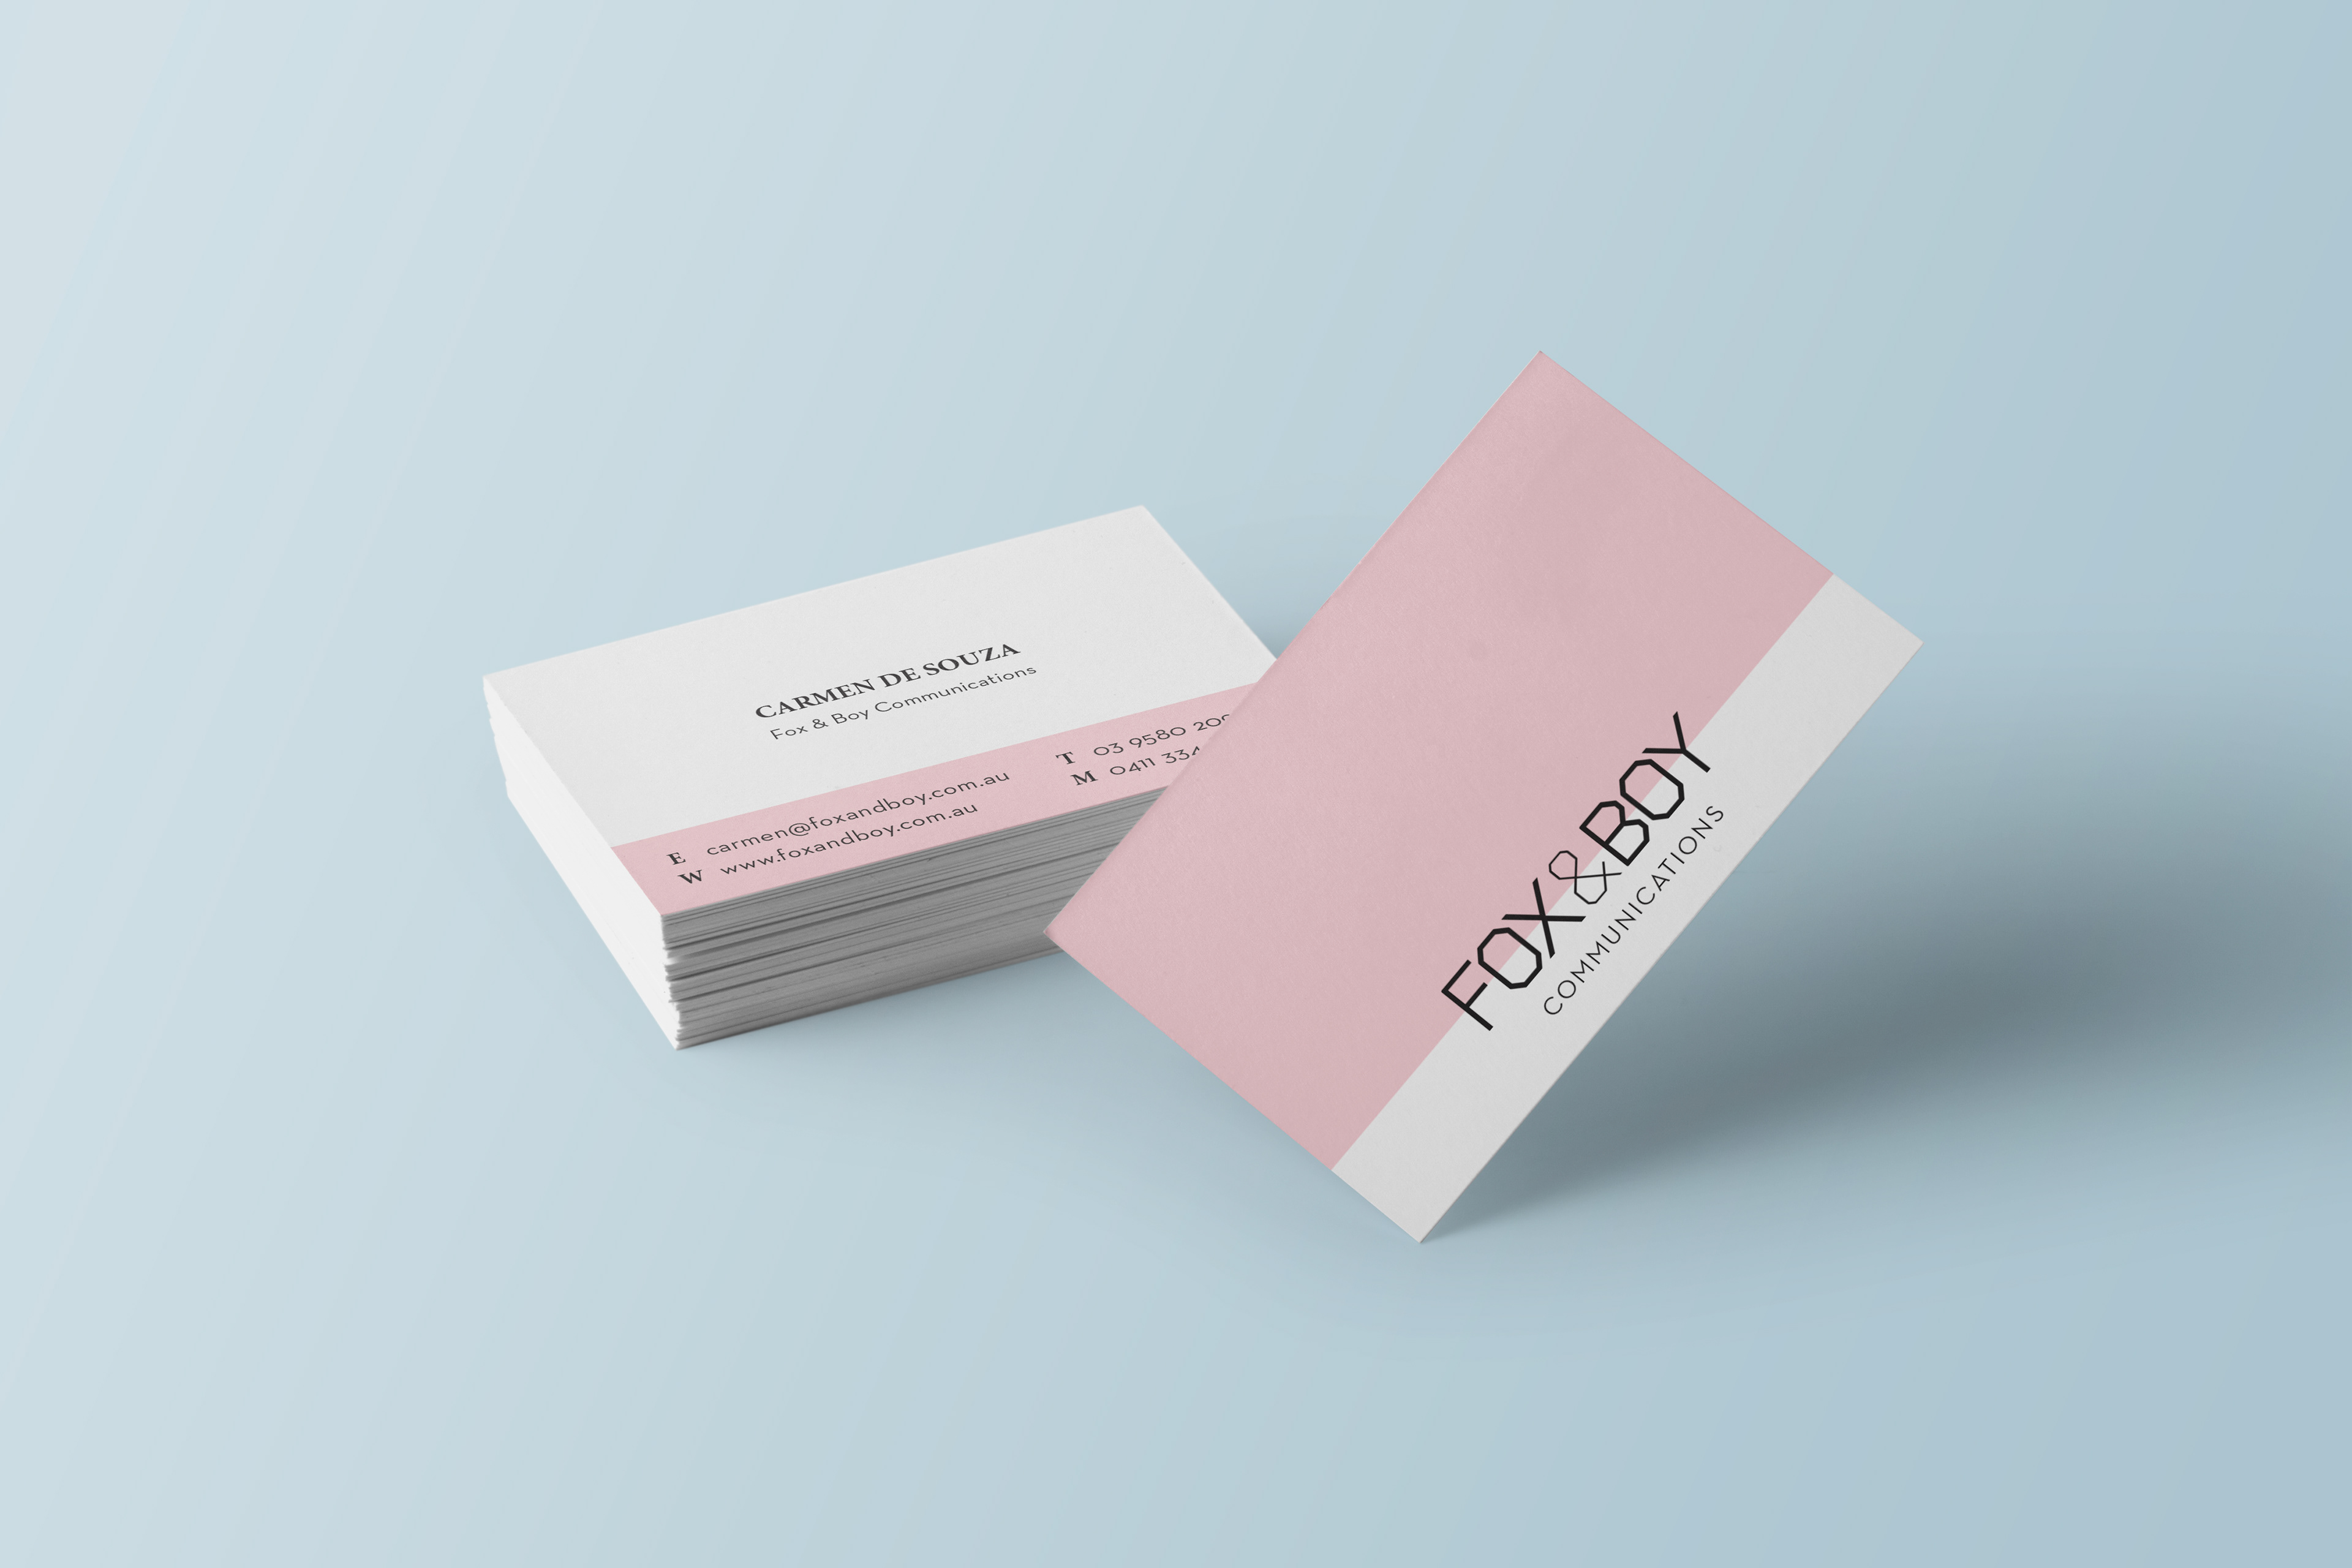 Corinna djaferis fox boy business card updating the brand of fox and boy communications starting with the business card fox and boy is a communications agency specializing in public relations colourmoves